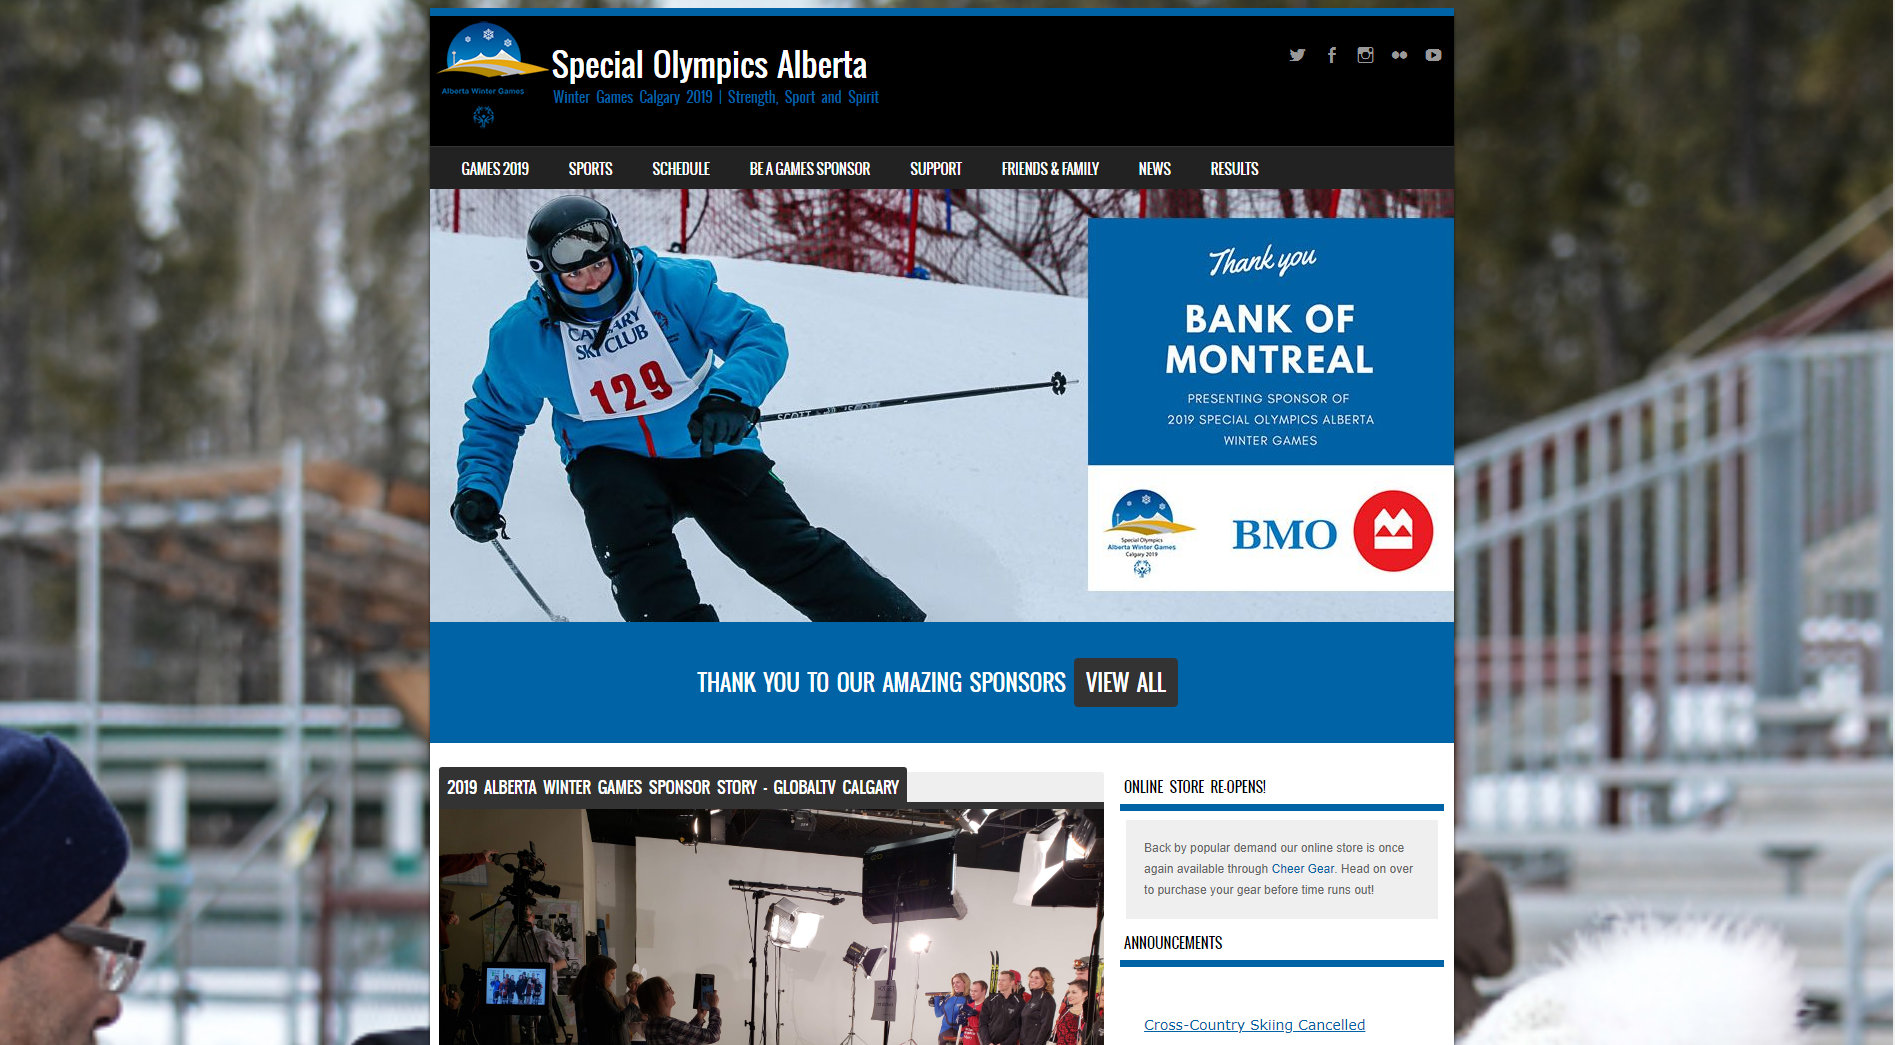 The homepage for Special Olympics Alberta Winter Games 2019